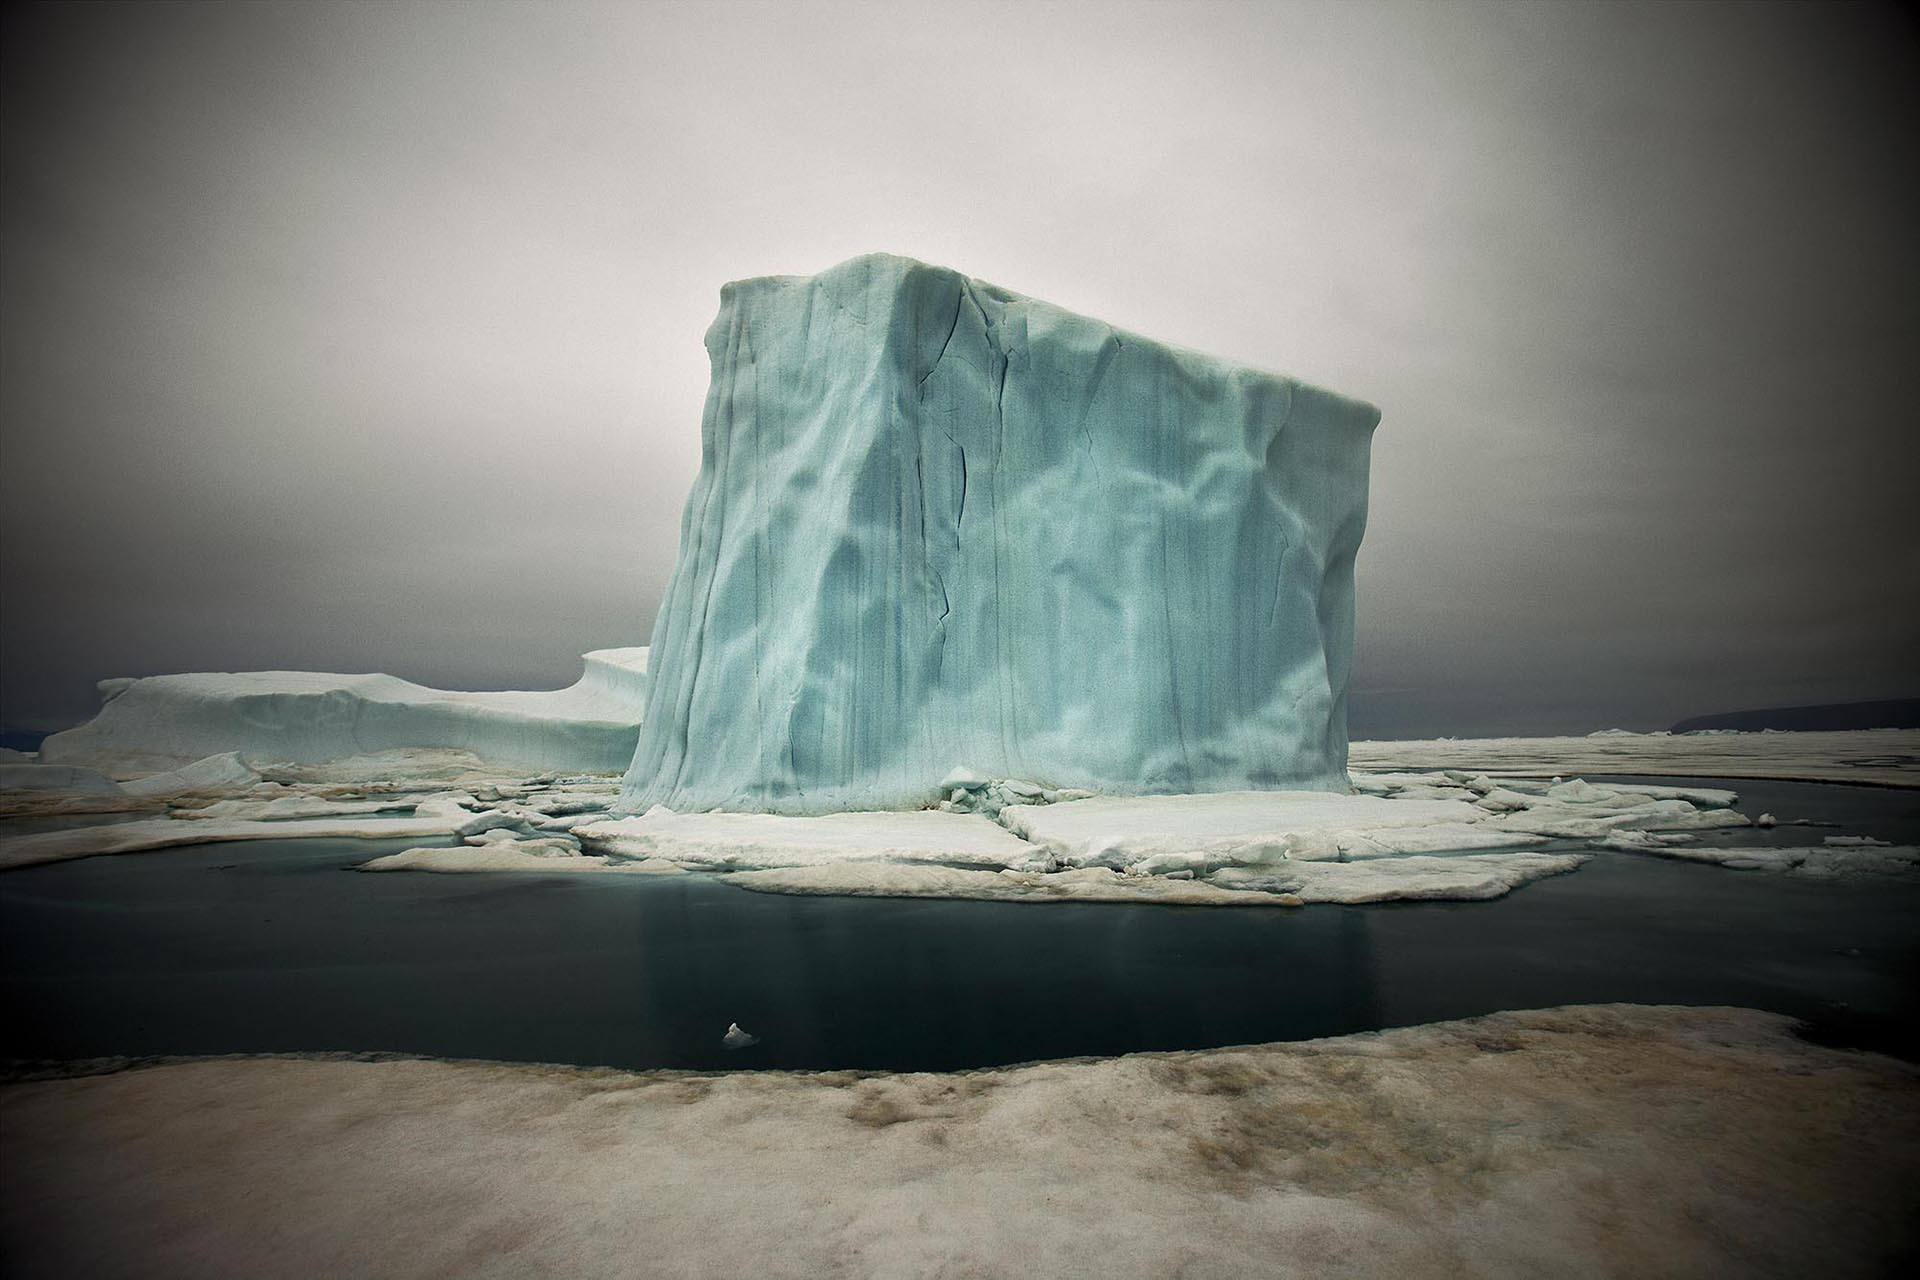 Image of iceberg in Greenland by Sebastian Copeland